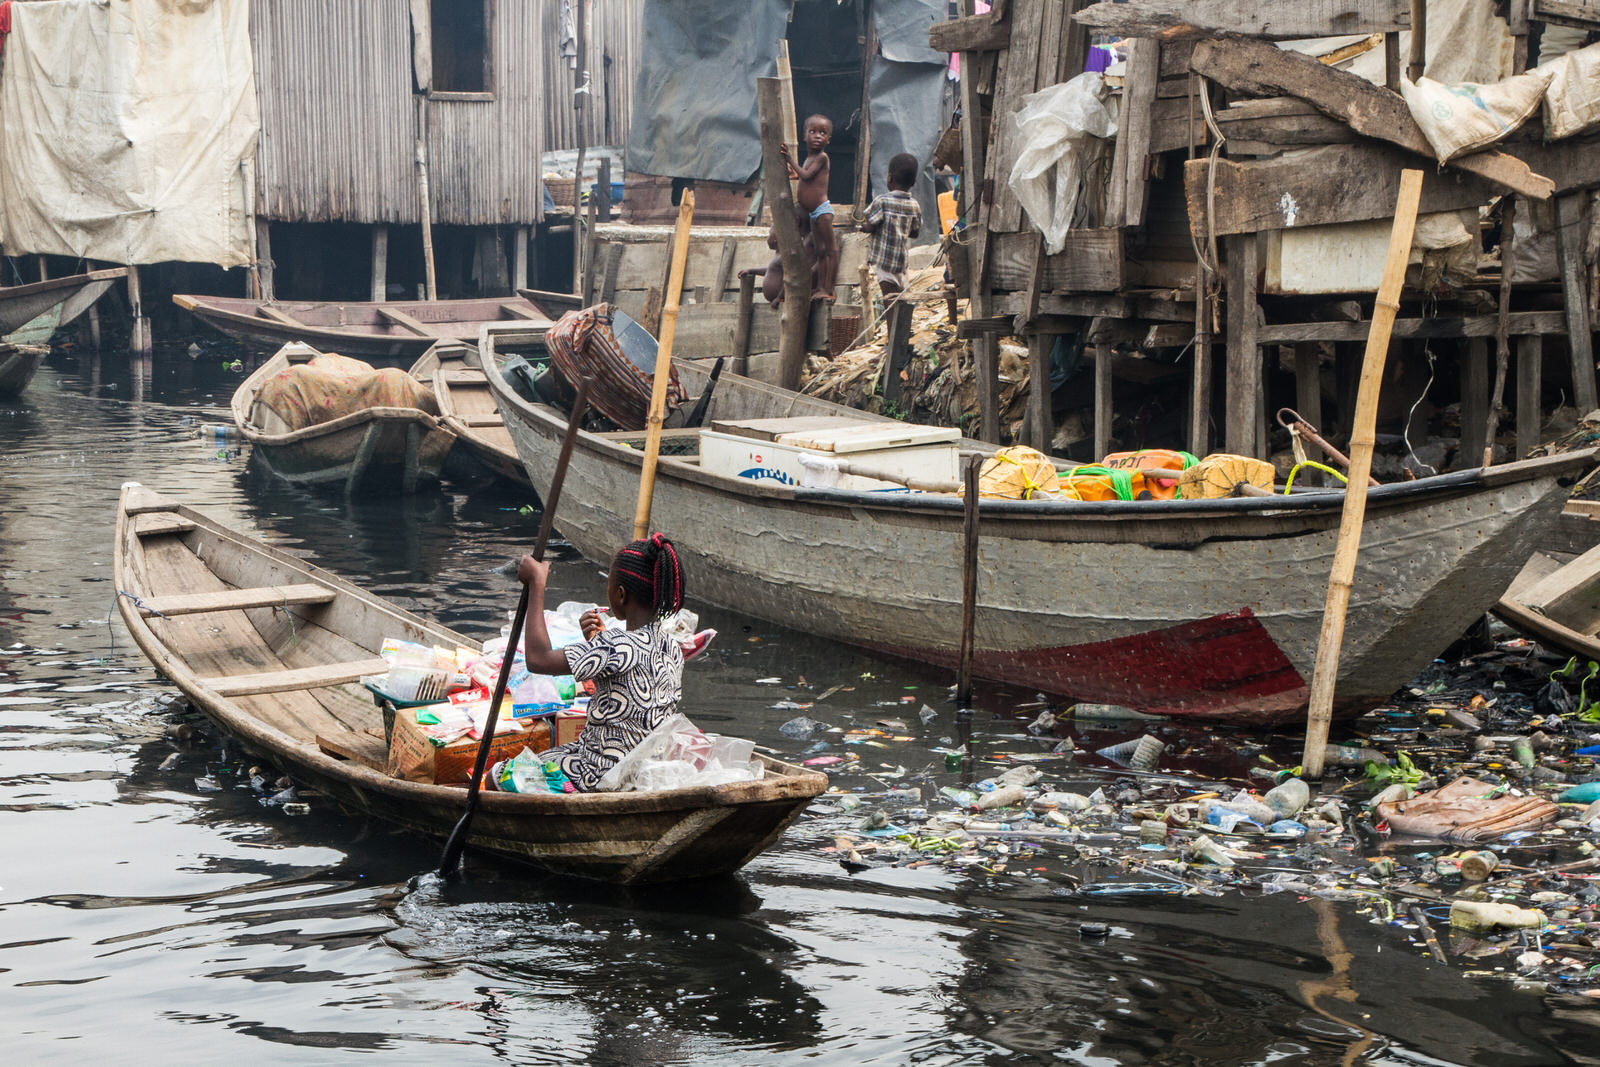 Many evictees have begun to return, though the rising cost of land on the waterfronts of Lagos remain a continued threat for Sogunro as well as Otodo Gbame and many others.